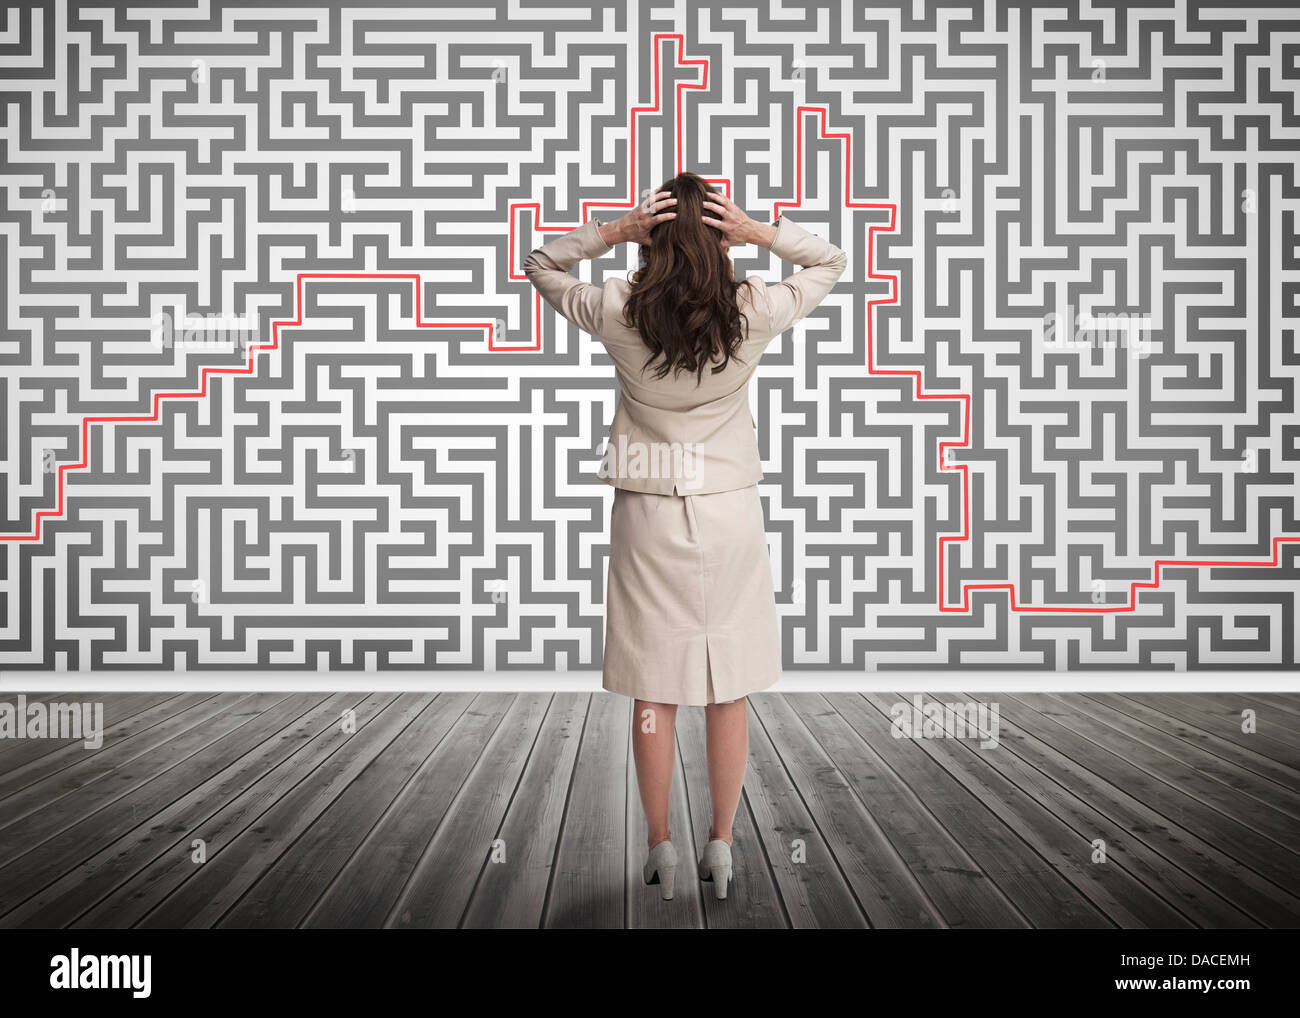 Puzzled businesswoman looking at a maze - Stock Image